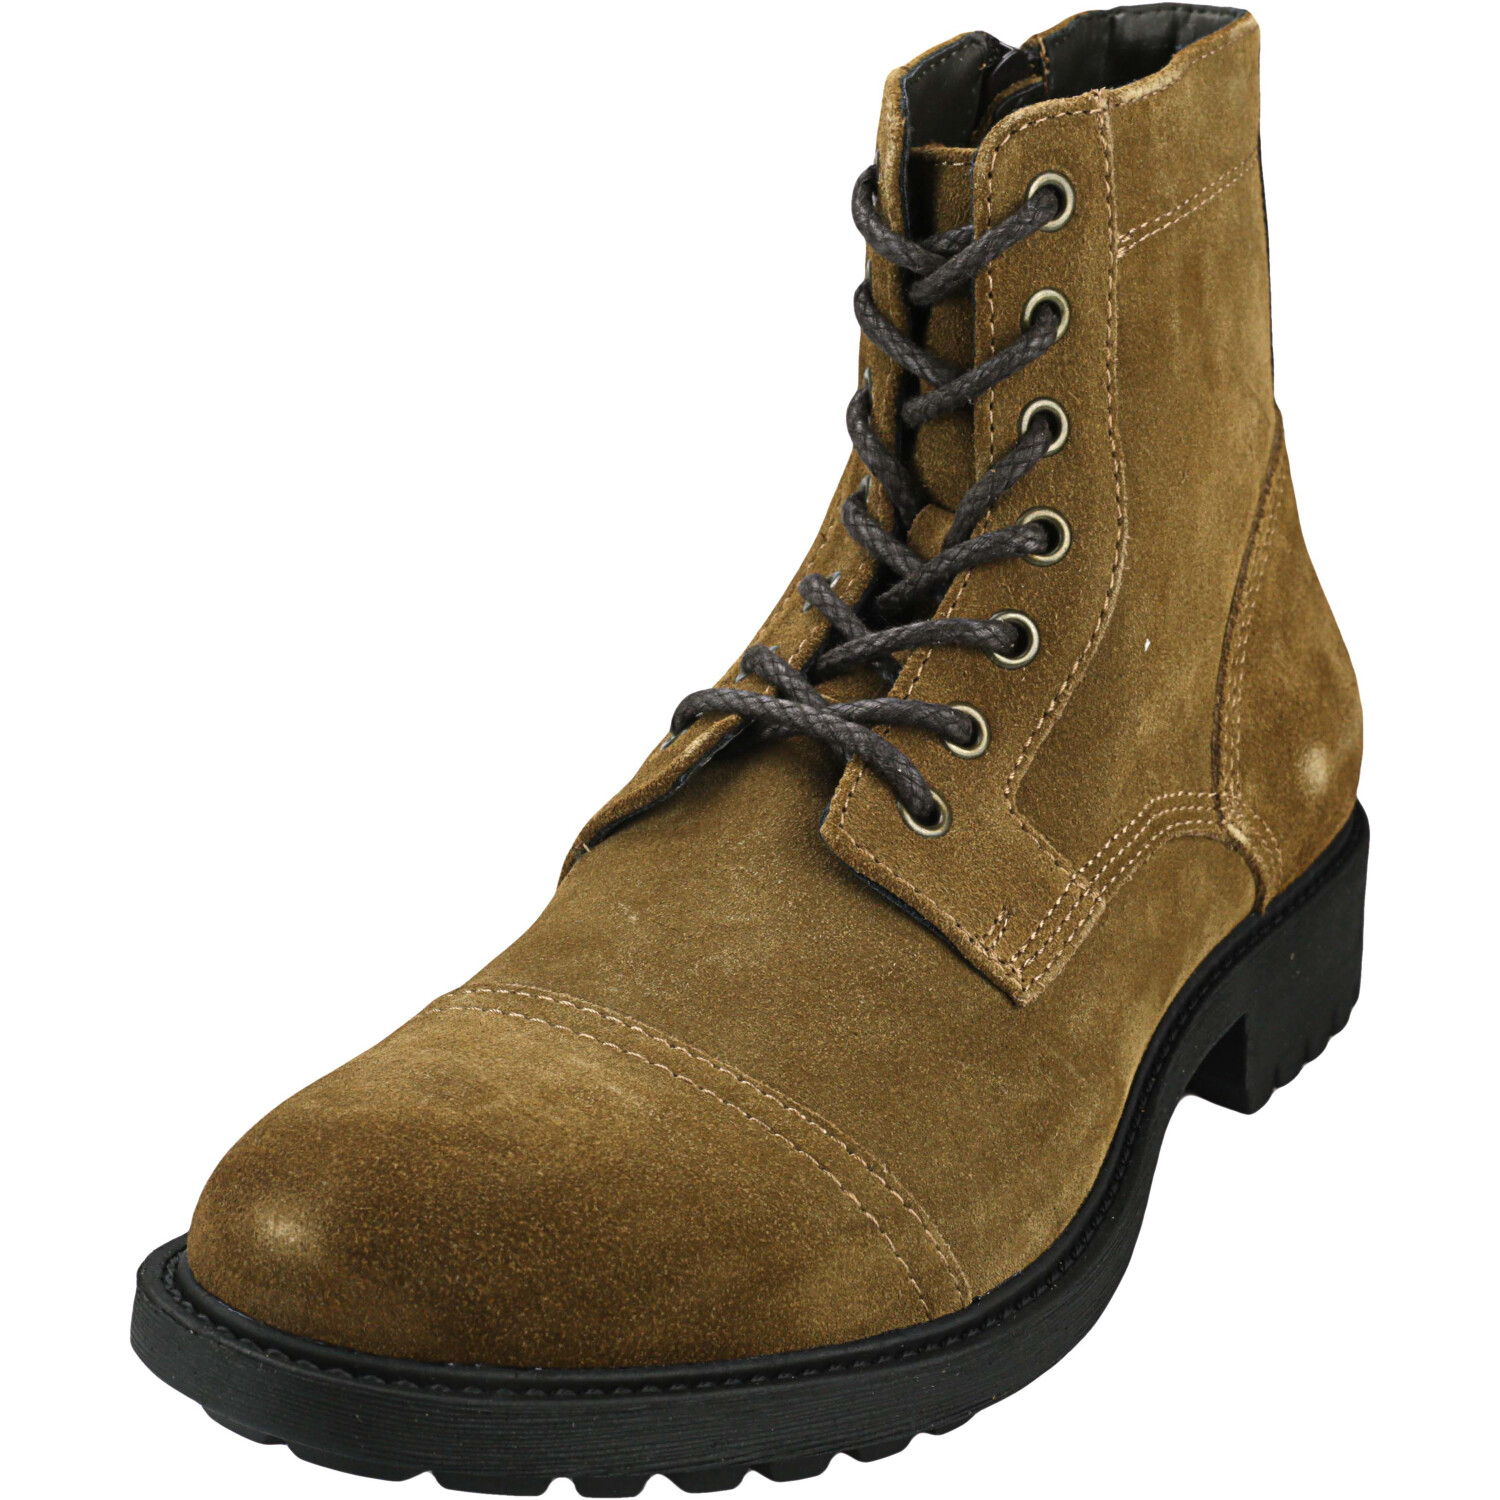 Frye Men's Cody Lace Up Tan Mid-Top Boot - 9M